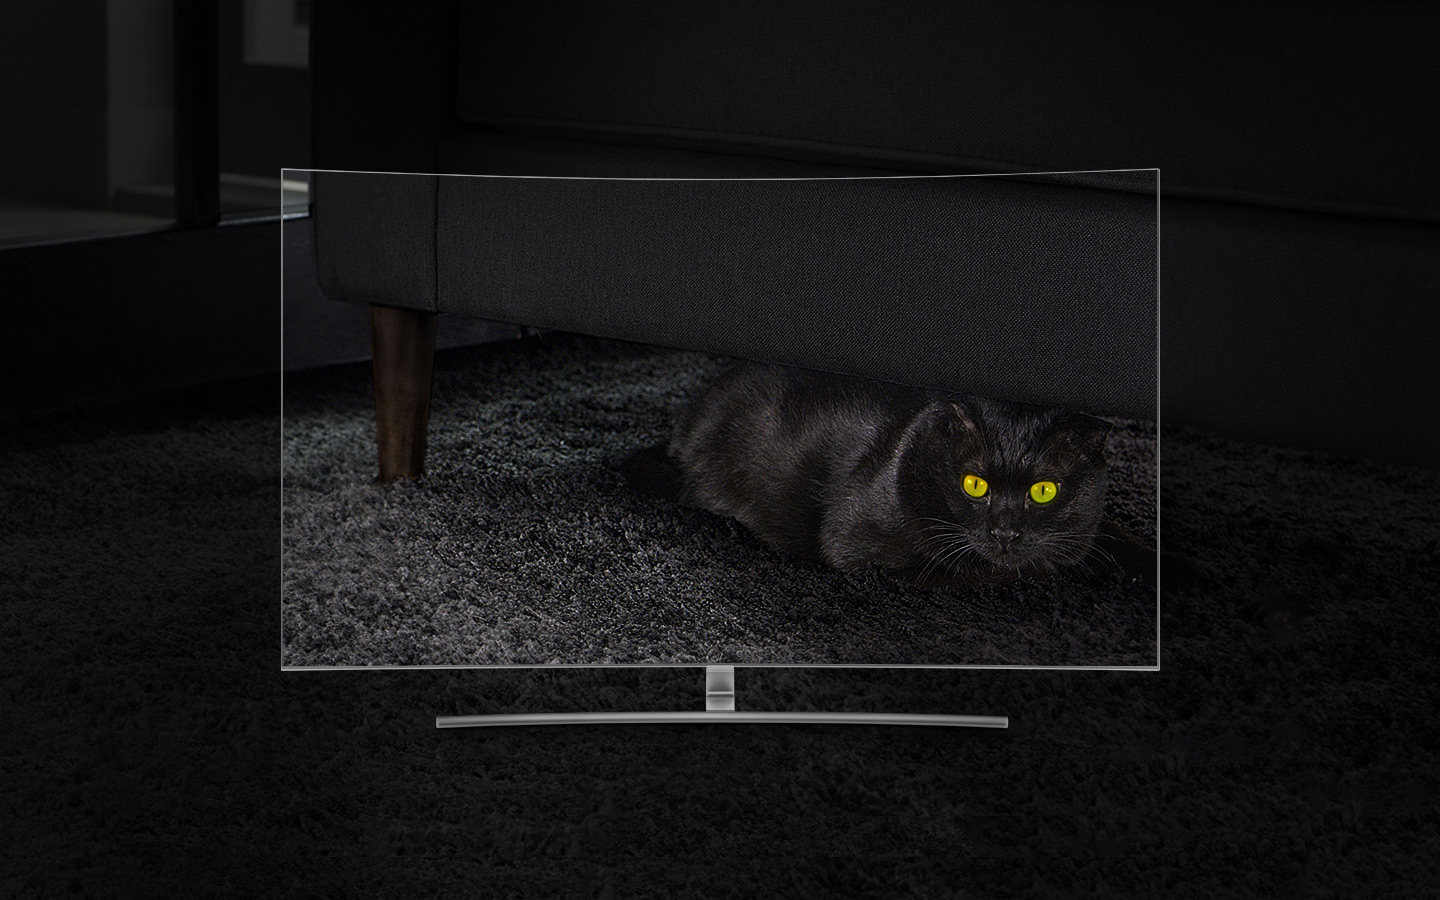 QLED TV Curved has been placed directly with front face and on its screen shows a black cat hiding in the dark under the sofa in the living room. The closer we go to 1500 nits, the more clearly we can see the cat although we could identify its eyes only at first.